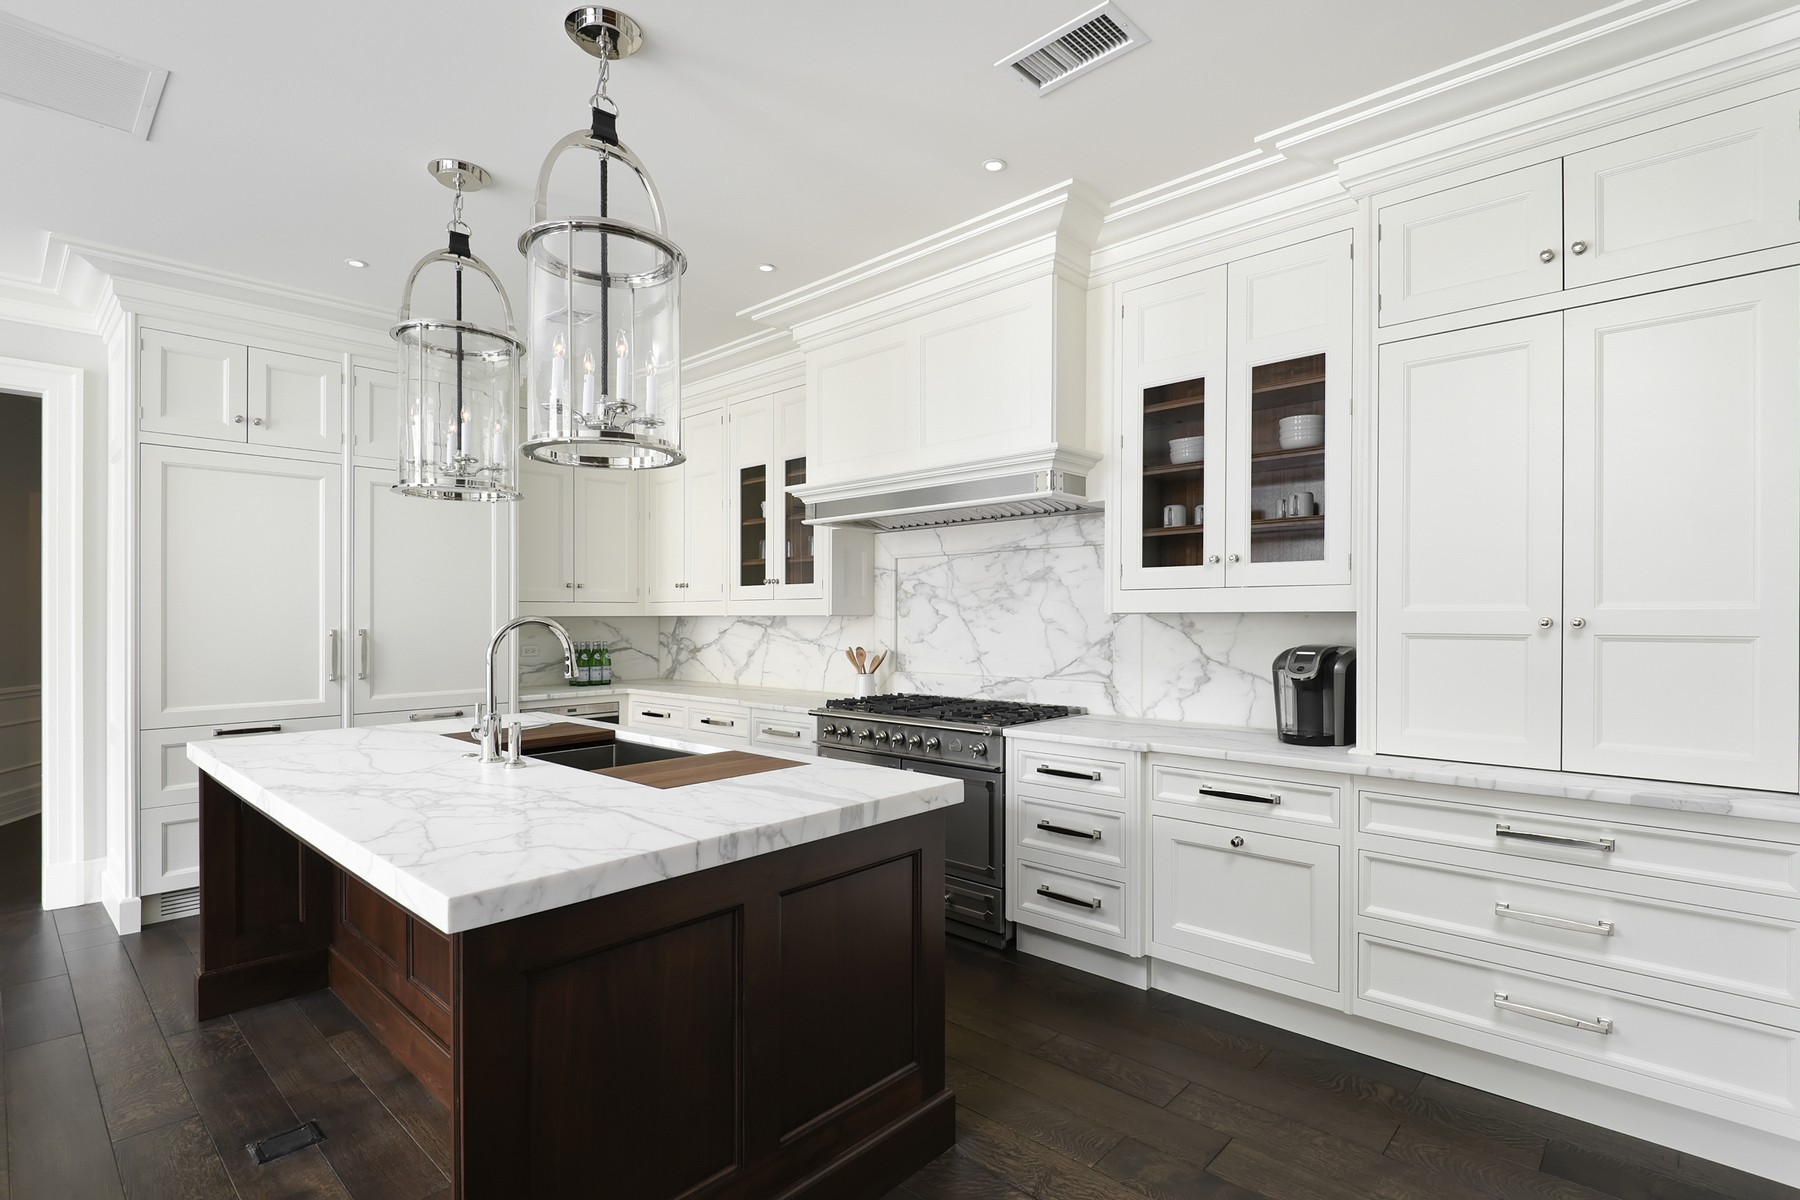 Additional photo for property listing at The Gold Coast's Newest and Finest Building 9 W Walton Street Unit 2201 Chicago, Illinois 60610 United States